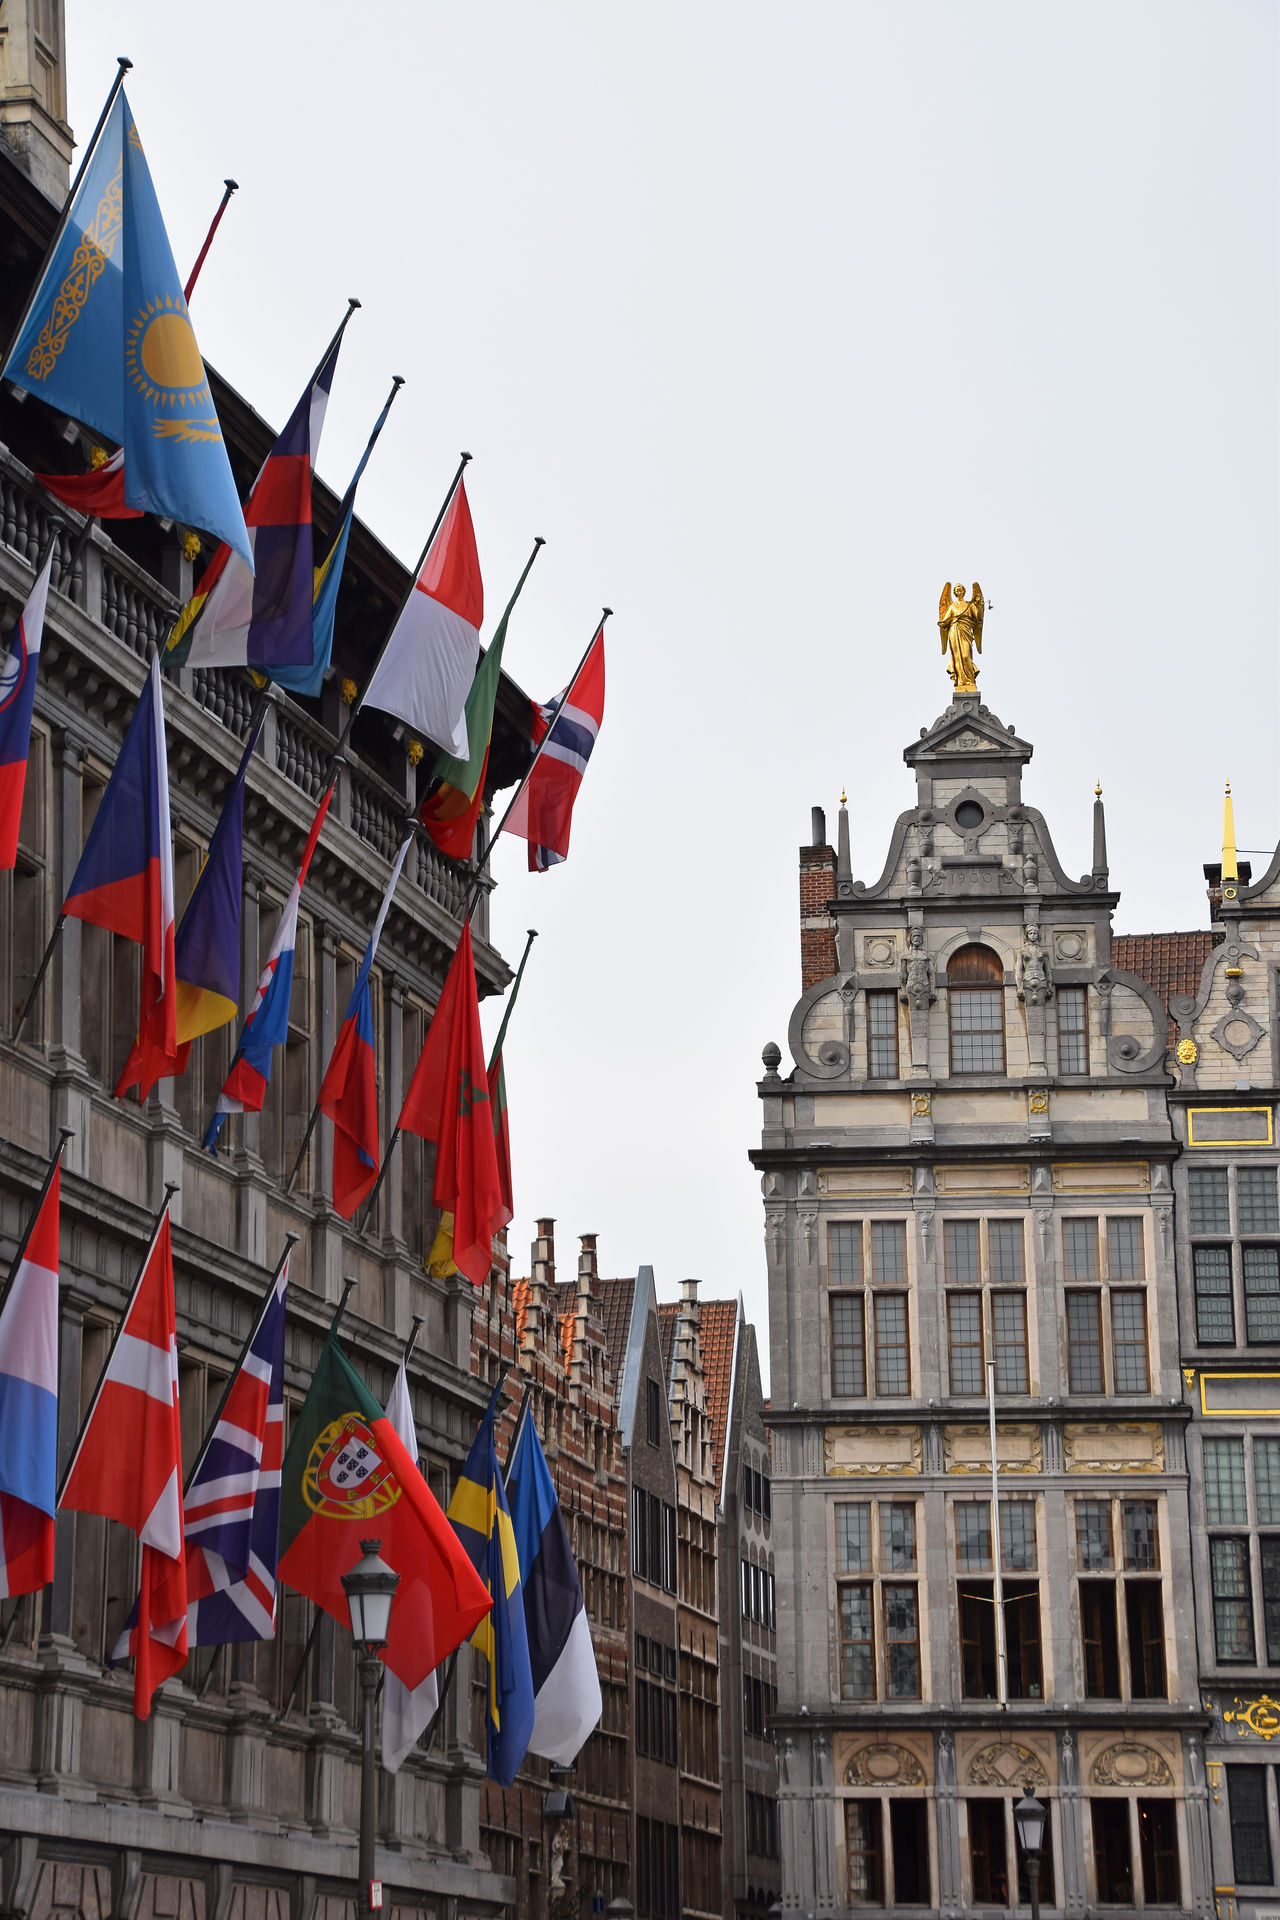 Old city in Antwerp, Stadhuis with flags, Belgium Antwerp Antwerp, Belgium Antwerpen Architectural Detail Architecture Architecture Architecture_collection Architecturelovers Building Building And Sky Building Exterior Building Story Buildings & Sky Buildings Architecture Buildingstyles Built Structure Flag Old Old Buildings Old City Outdoors Stadhuis Travel Travel Destinations